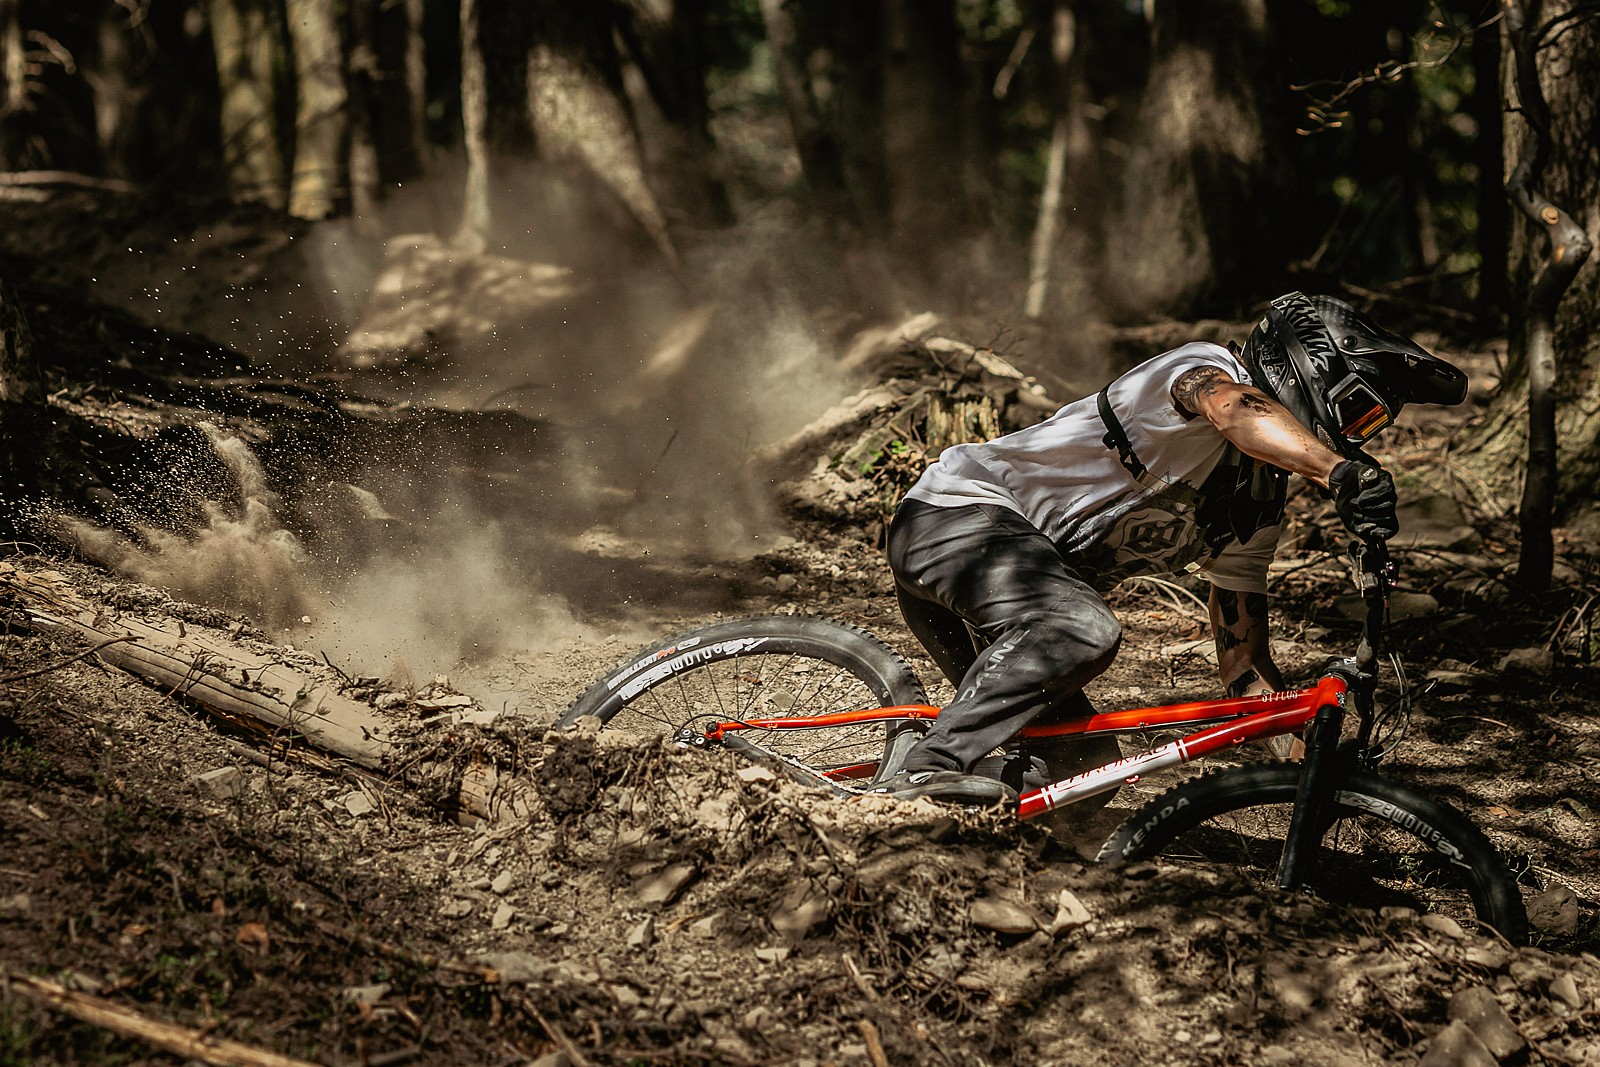 dusty dusty - Banan - Mountain Biking Pictures - Vital MTB